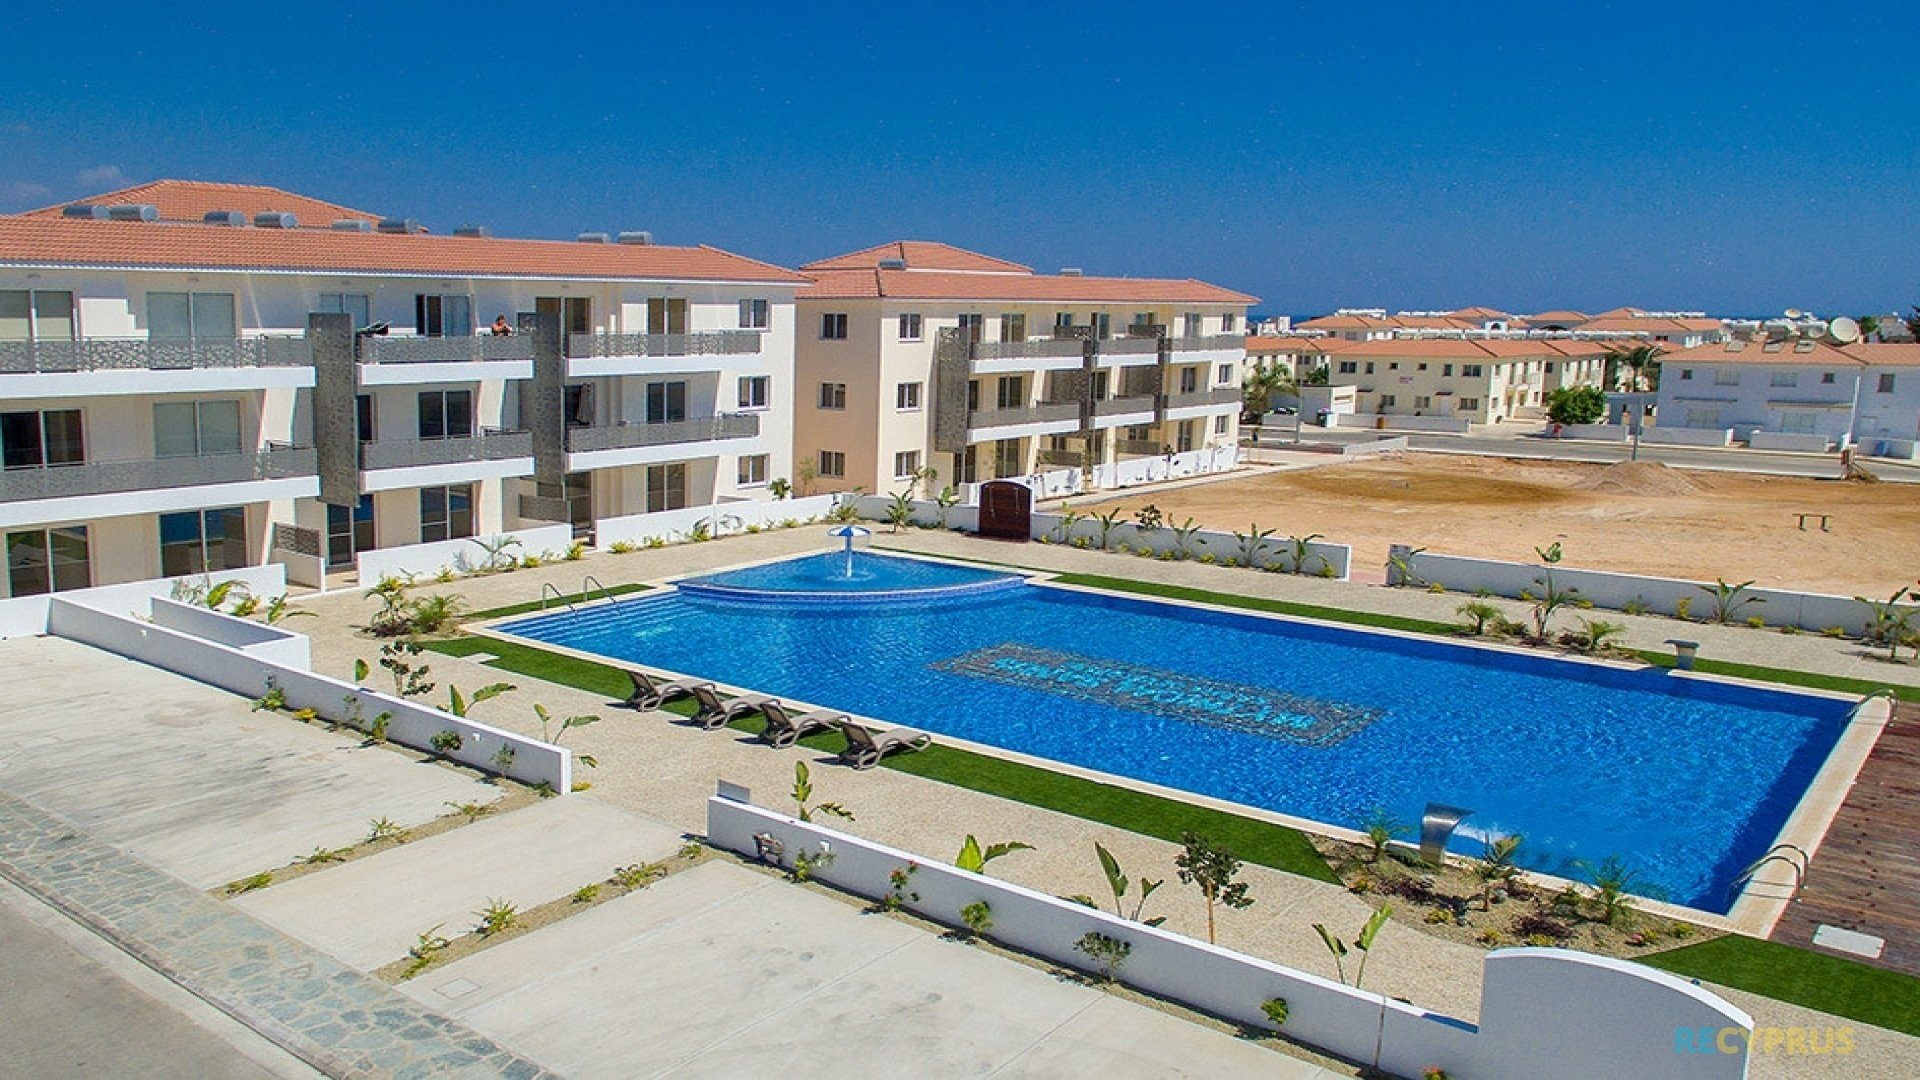 Apartment for sale Kapparis Famagusta Cyprus 10 3444